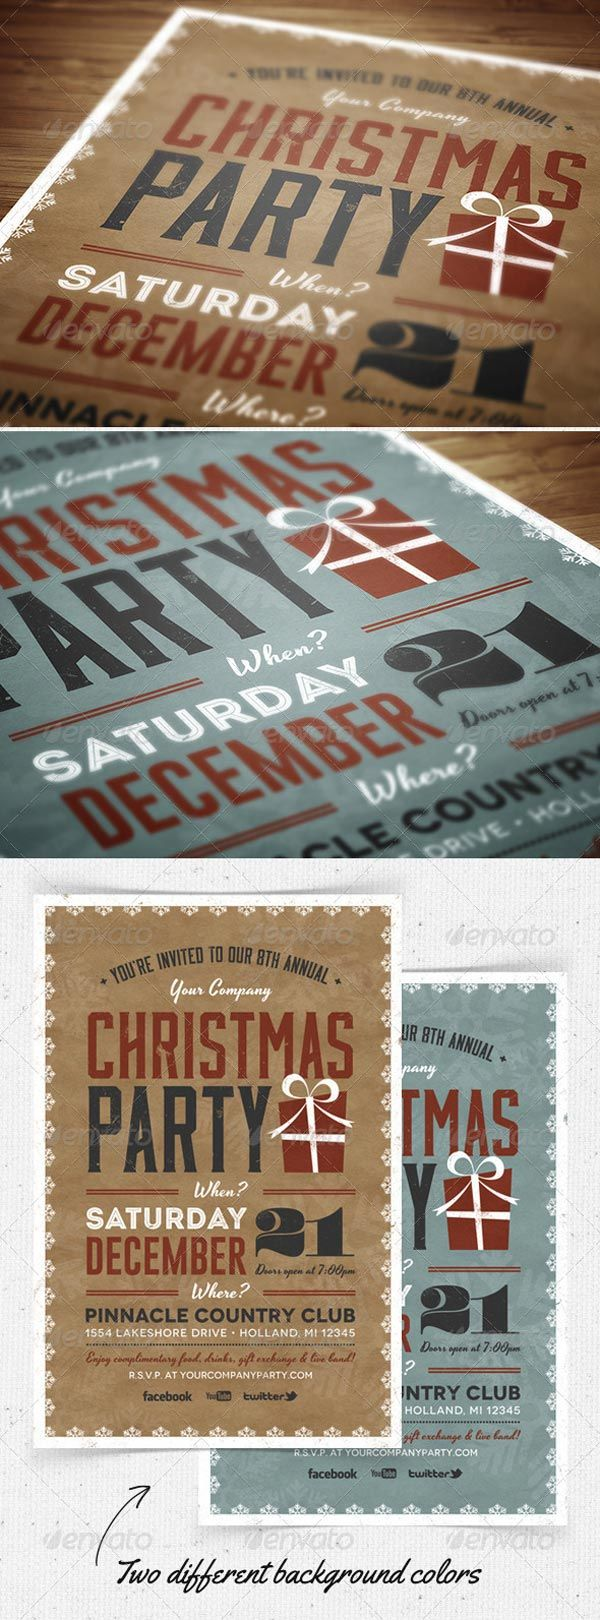 17 best ideas about holiday invitations holiday buy christmas party flyer invitation by makemediaco on graphicriver use this layered photoshop flyer invitation for your next holiday party